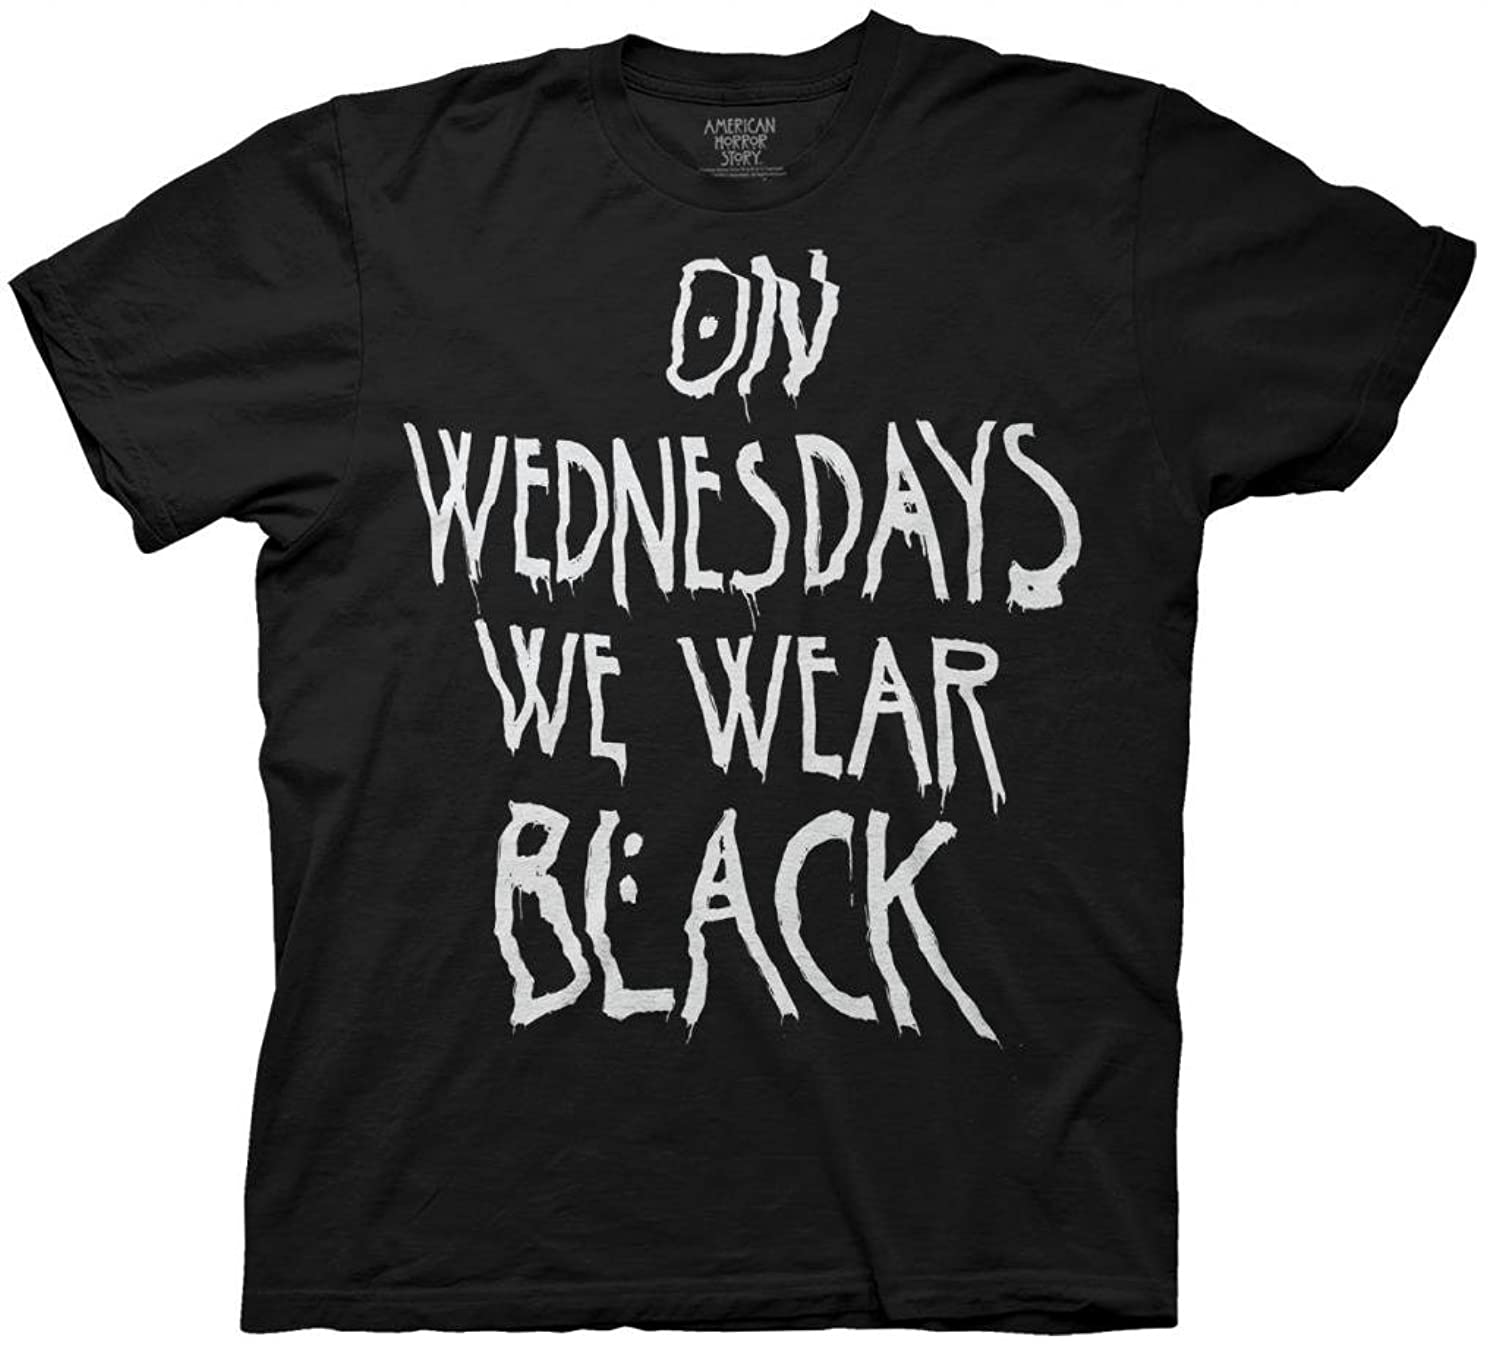 Amazon.com: American Horror Story On Wednesdays We Wear Black ...